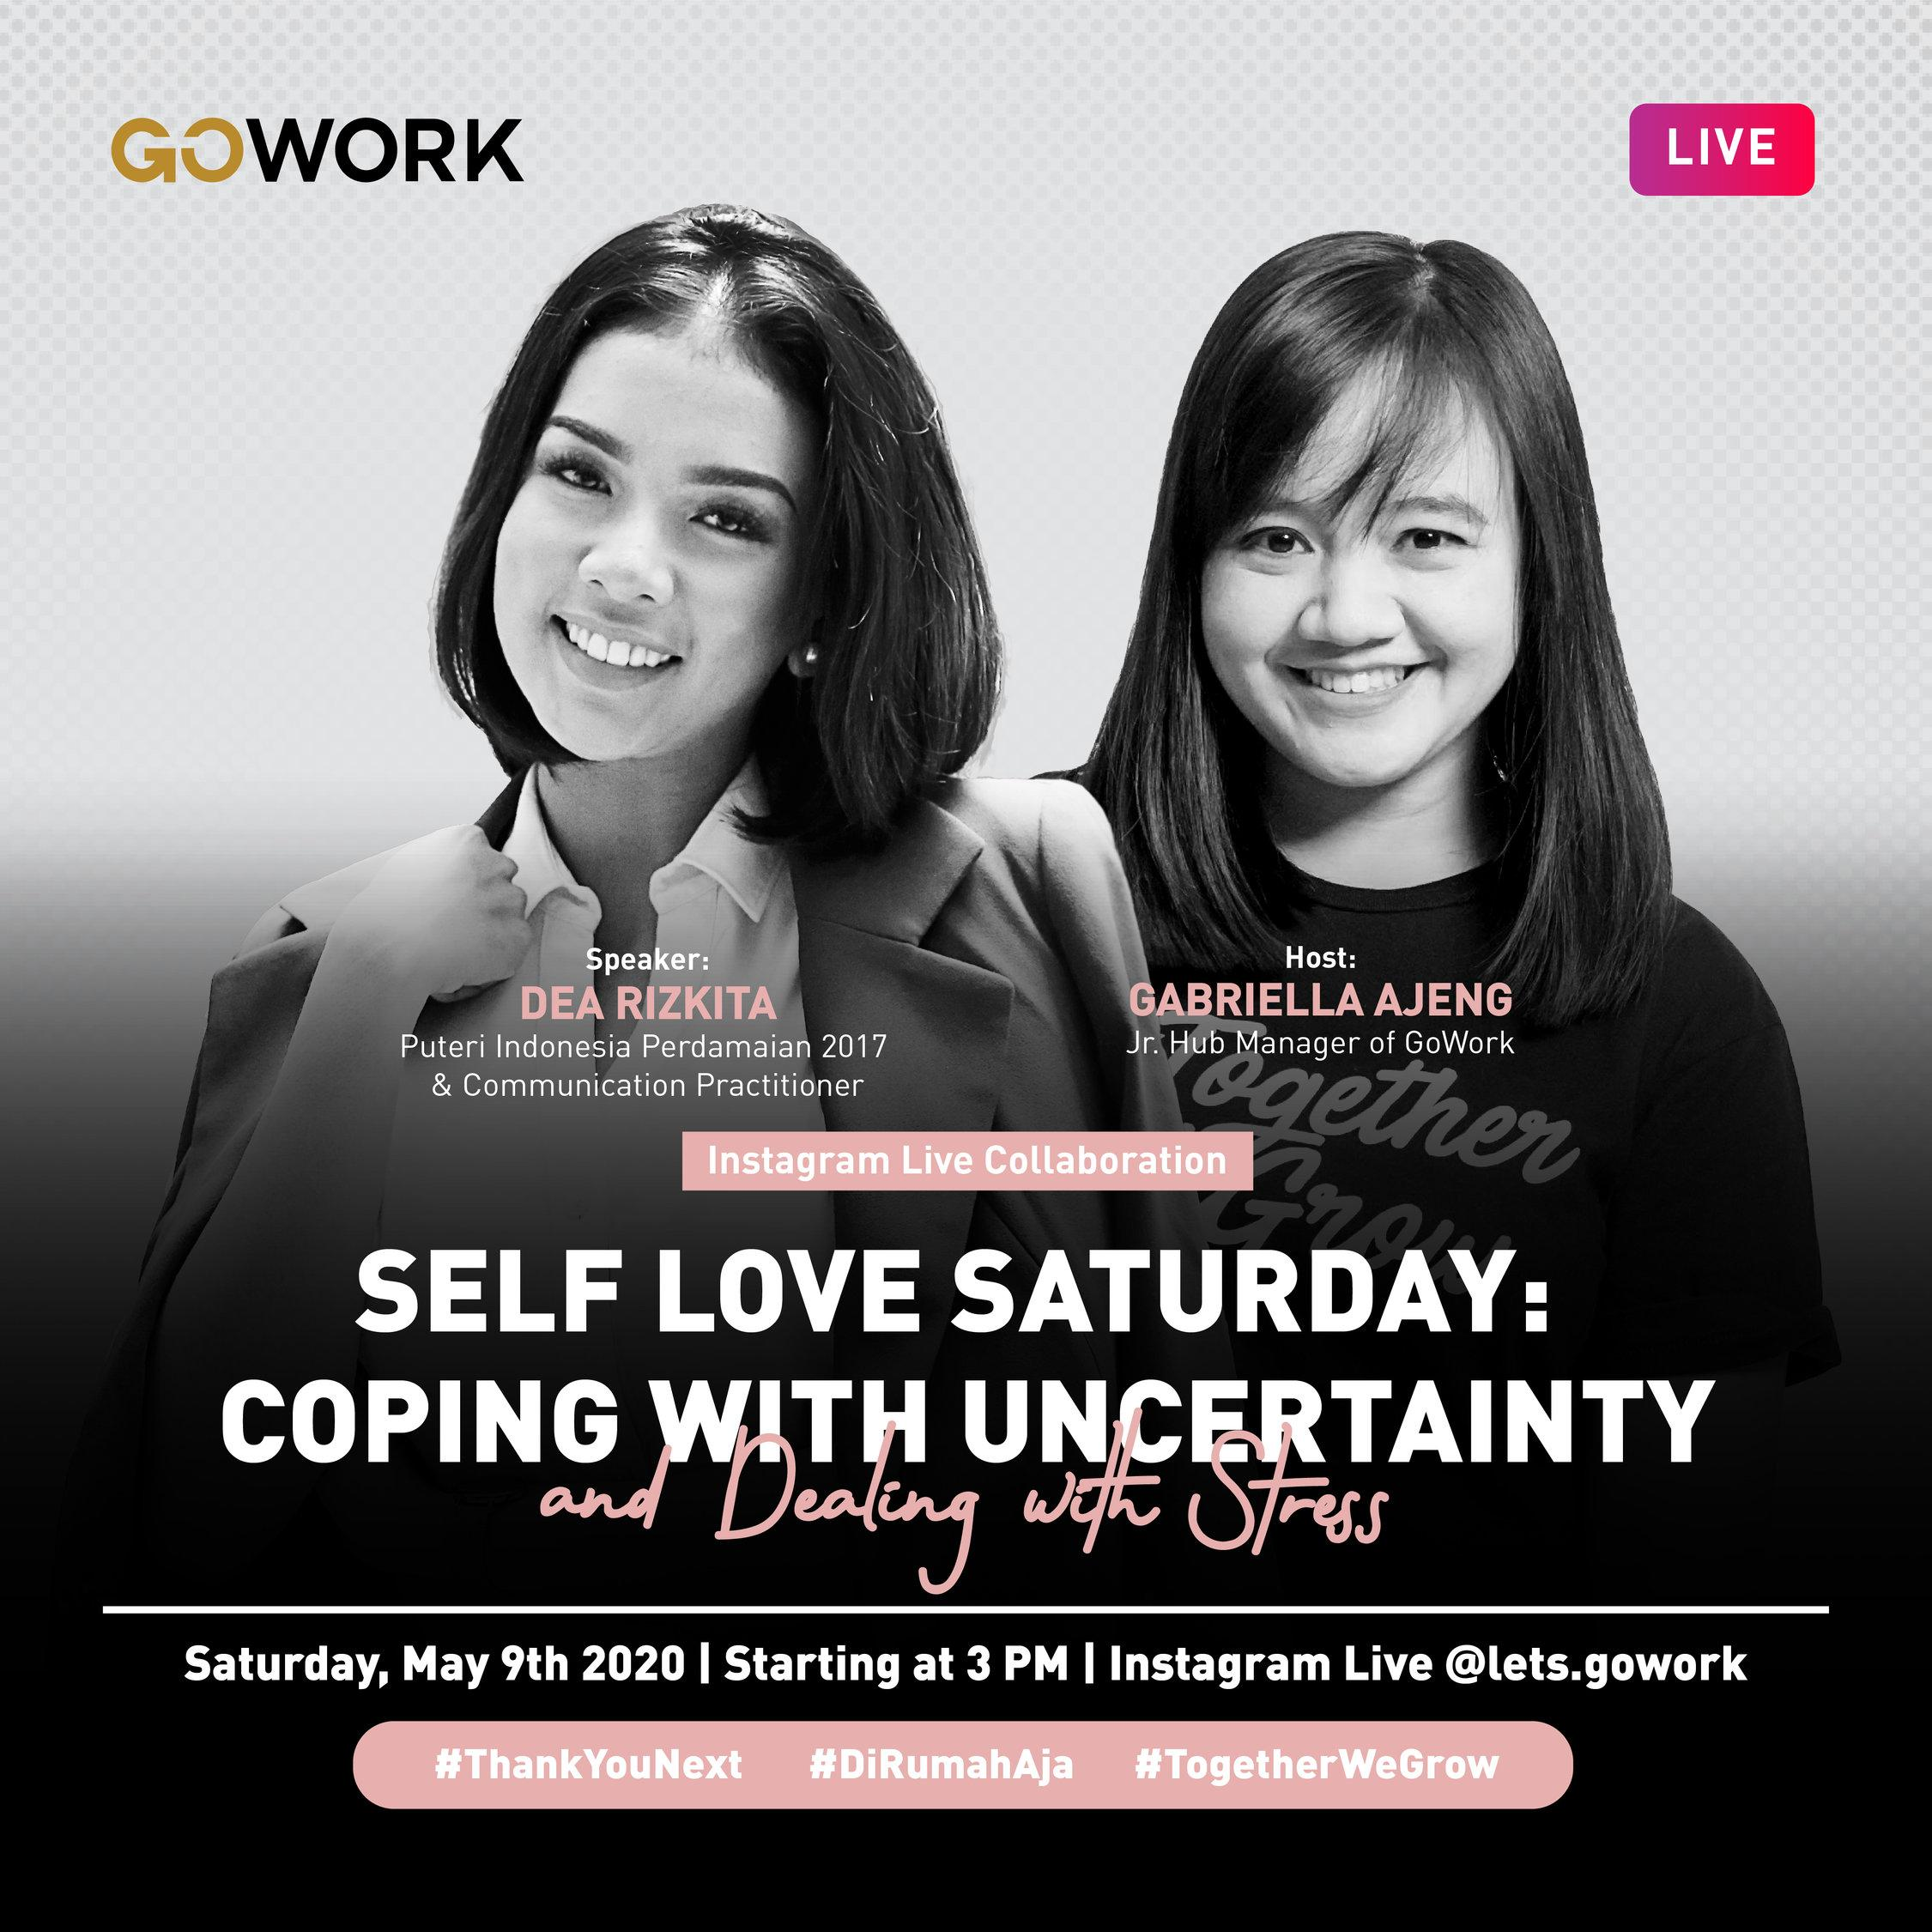 Self Love Saturday: Coping with Uncertainty and Dealing with Stress